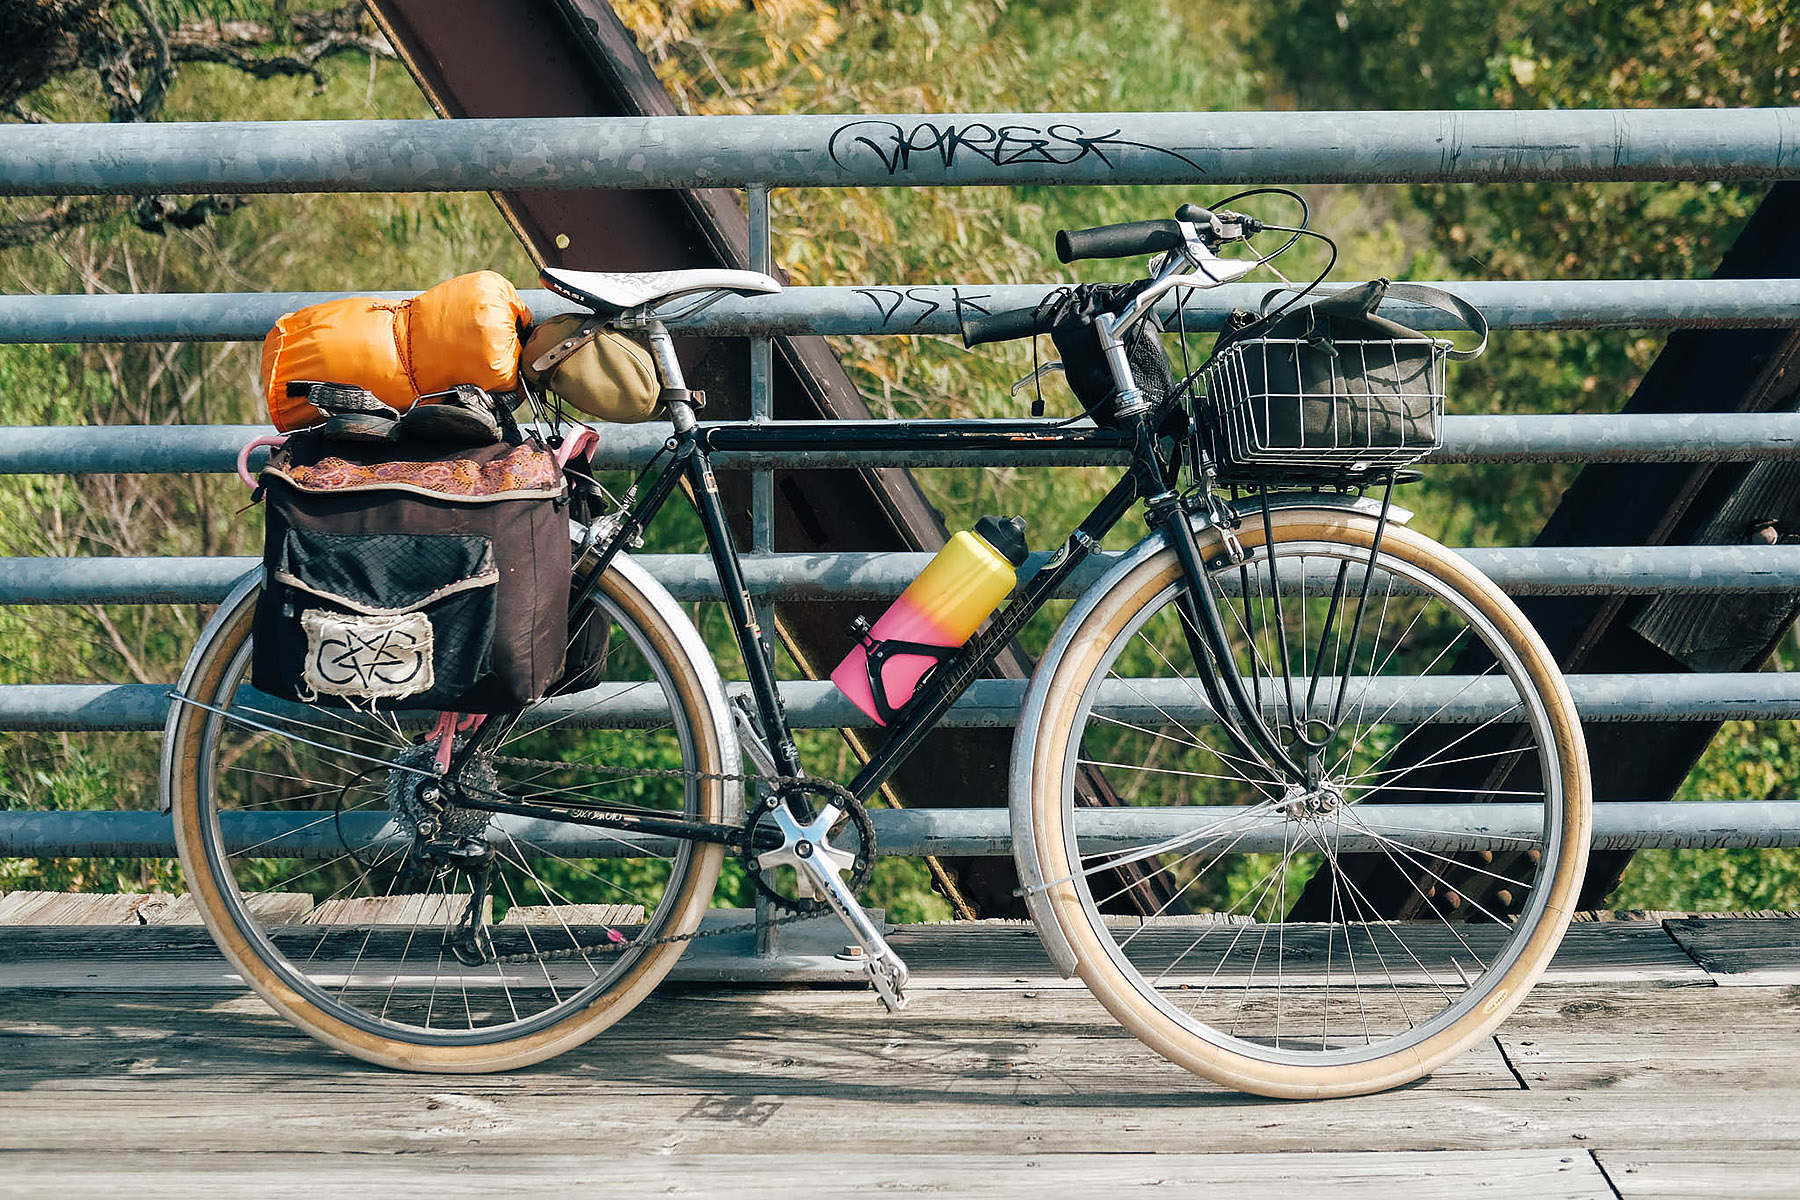 My 1990 Miyata 610 loaded up. New addition - a looney bin for my 40 oz. Hydro Flask #rideslow #arrivewhenever